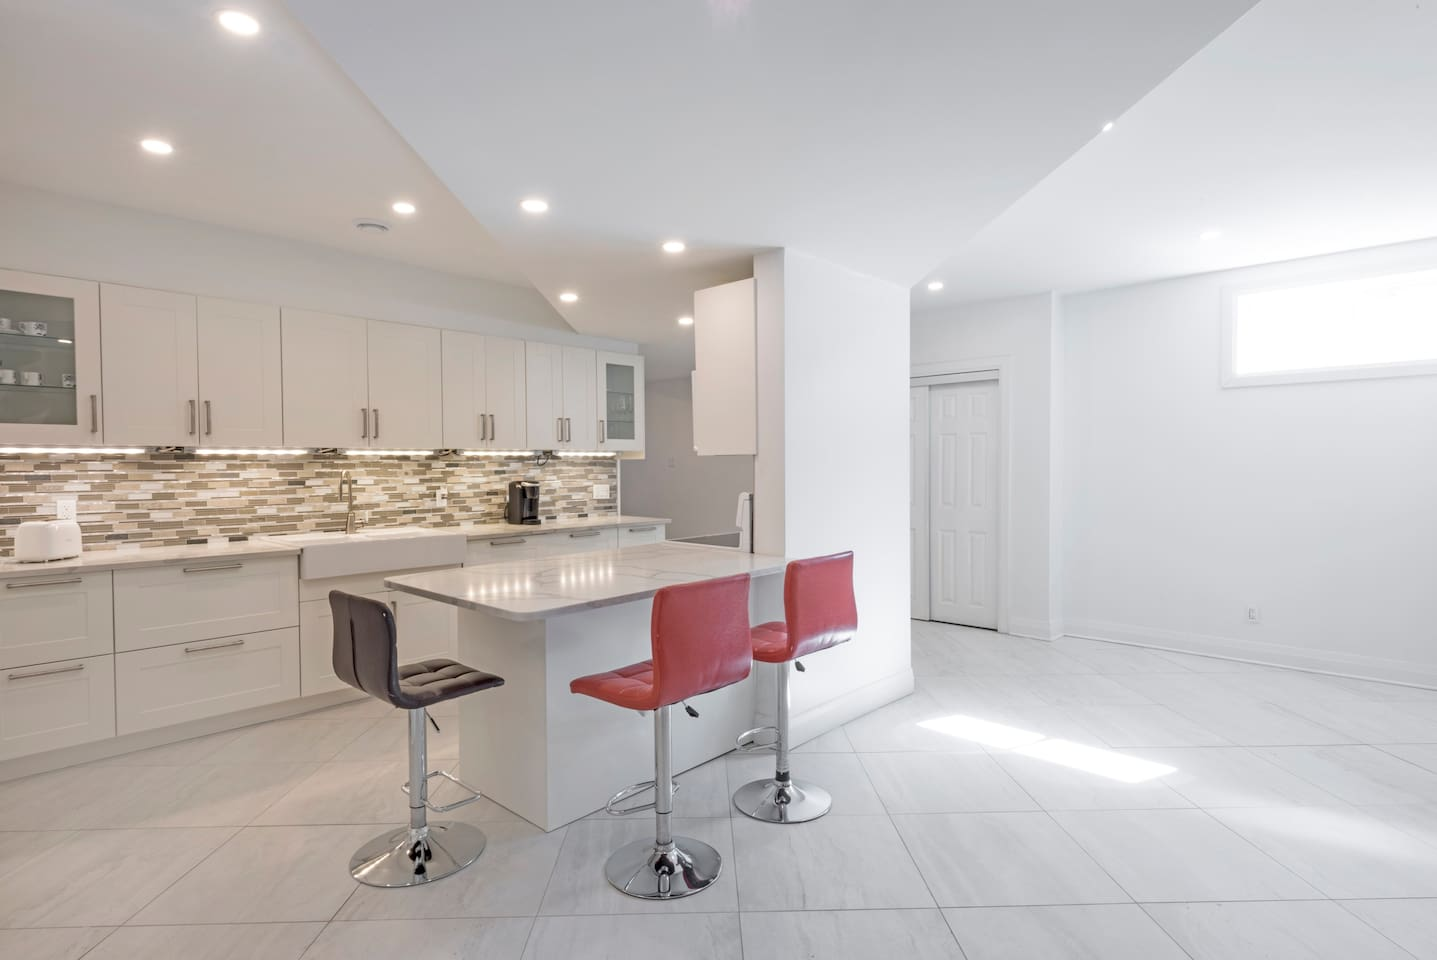 Perfect kitchen to cook and gather around with friends family